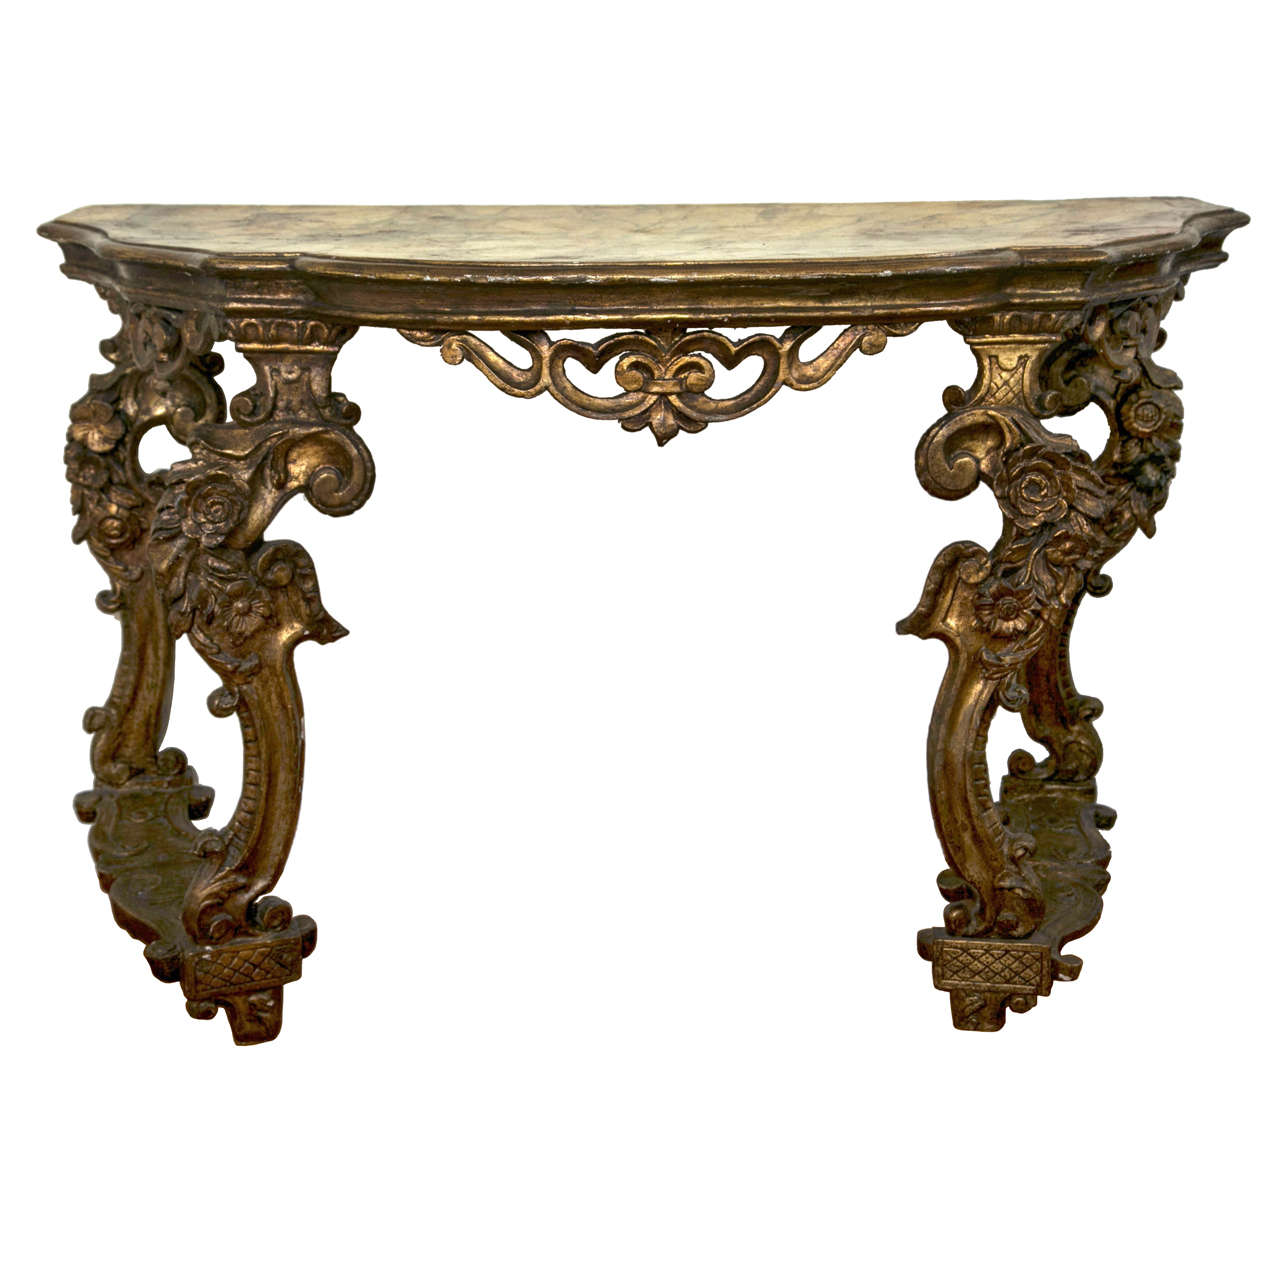 French Console Table 19th century french gilded console table for sale at 1stdibs